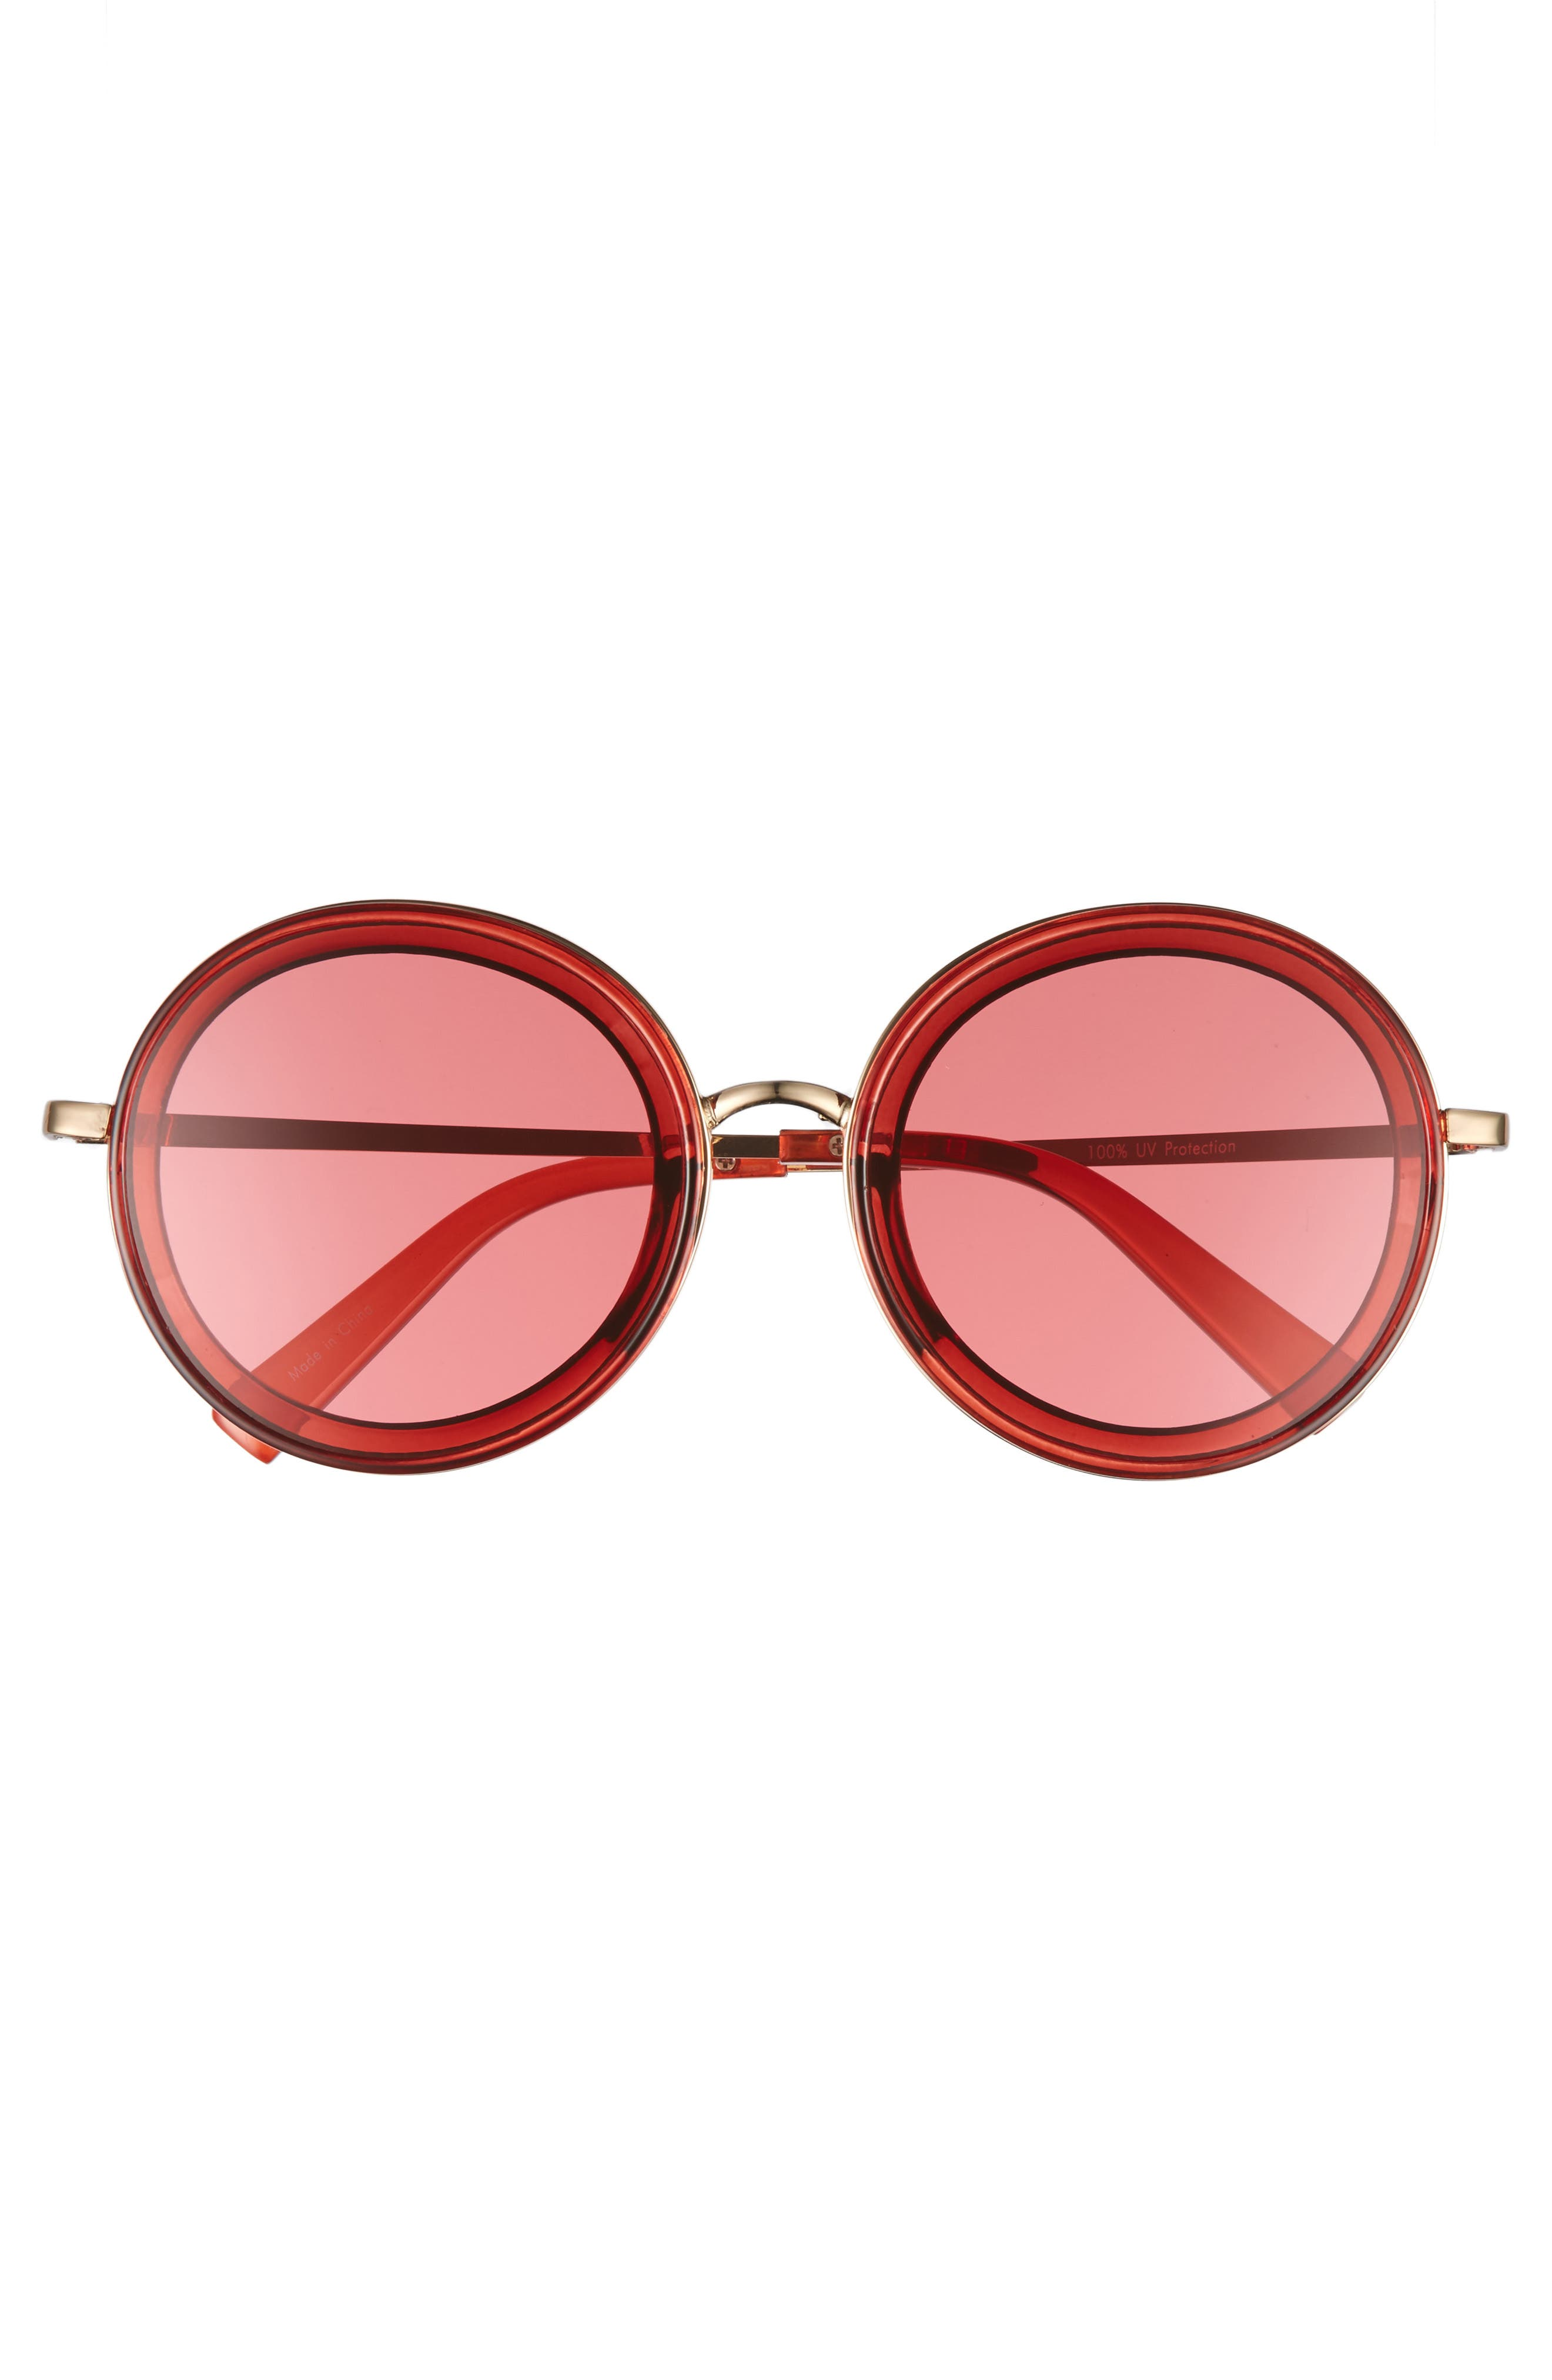 59mm Round Sunglasses,                             Alternate thumbnail 3, color,                             Pink